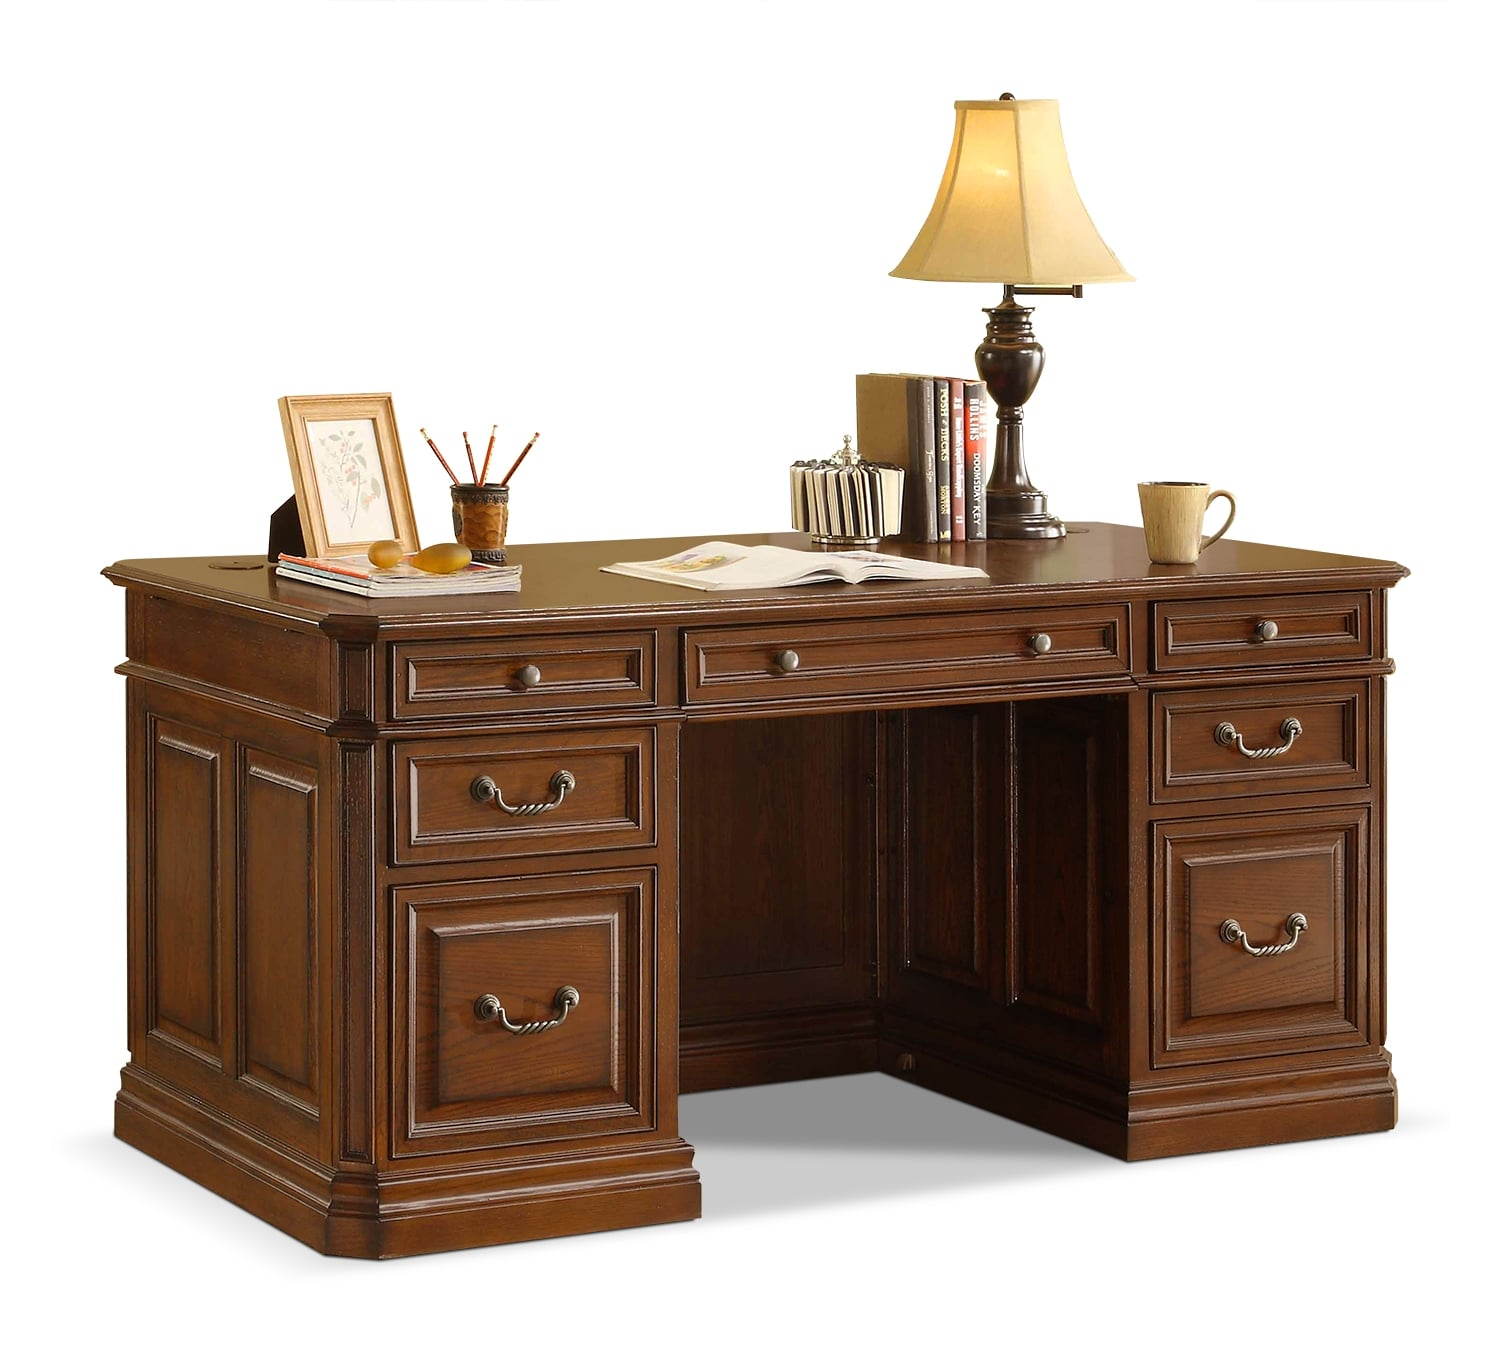 Home Office Furniture - Johanne Desk - Chocolate Oak